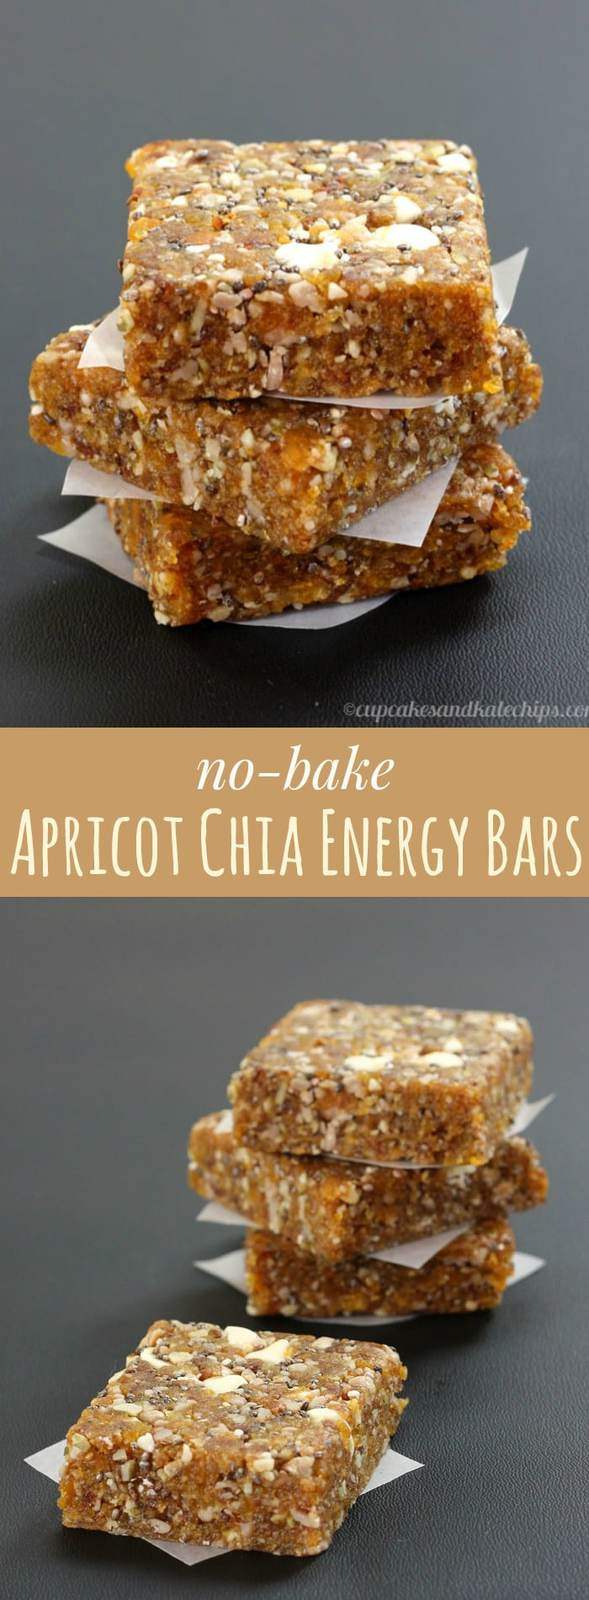 Apricot Chia Homemade Energy Bars